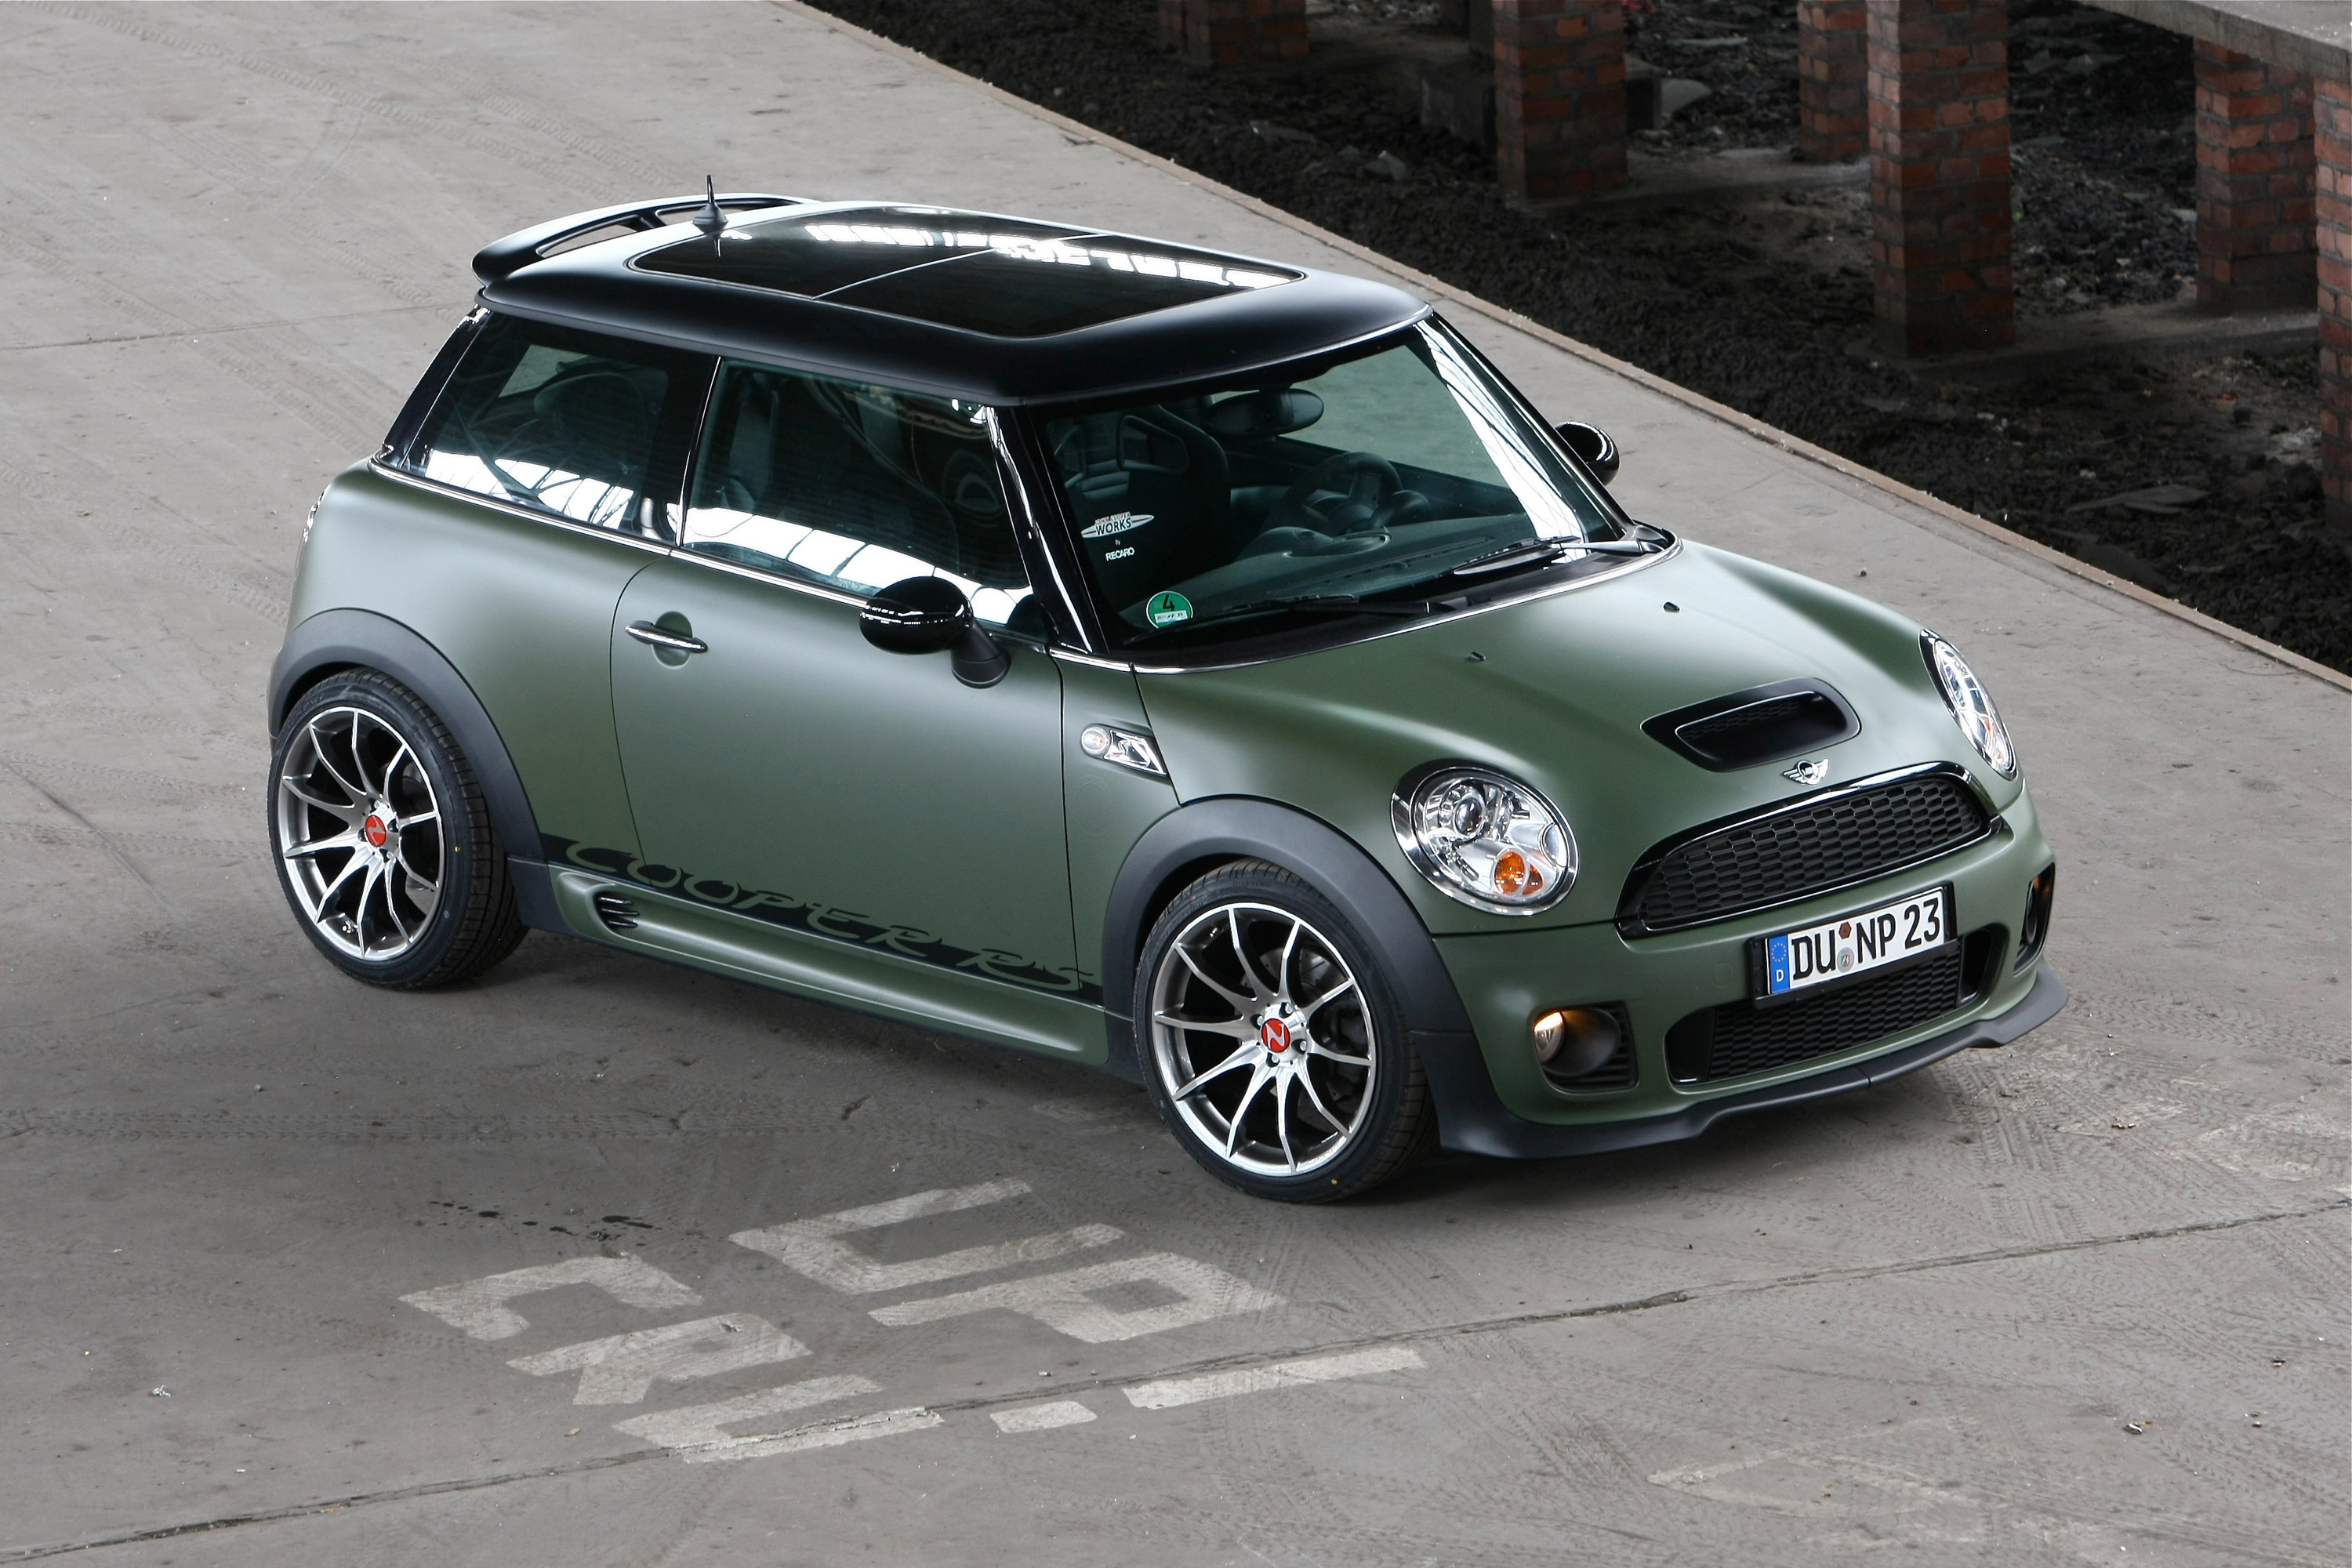 nowack motors boosts the mini cooper s and jcw. Black Bedroom Furniture Sets. Home Design Ideas